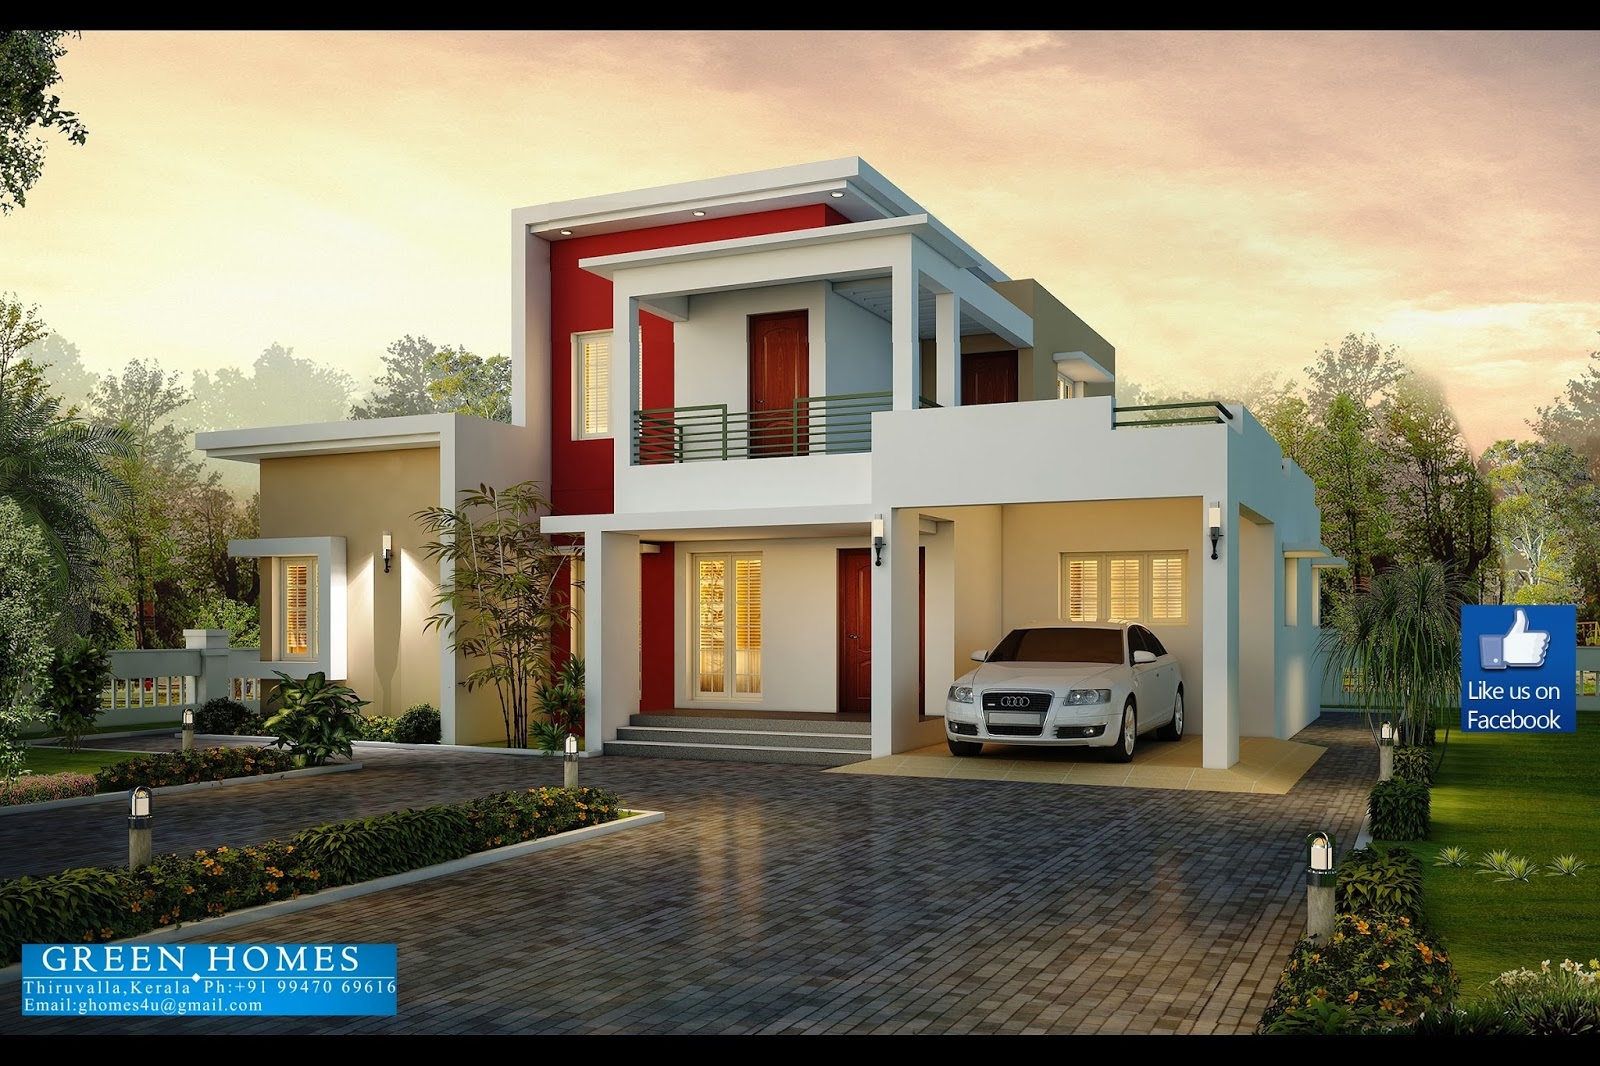 Green homes awesome 3 bedroom modern house design for Modern 3 bedroom house plans and designs